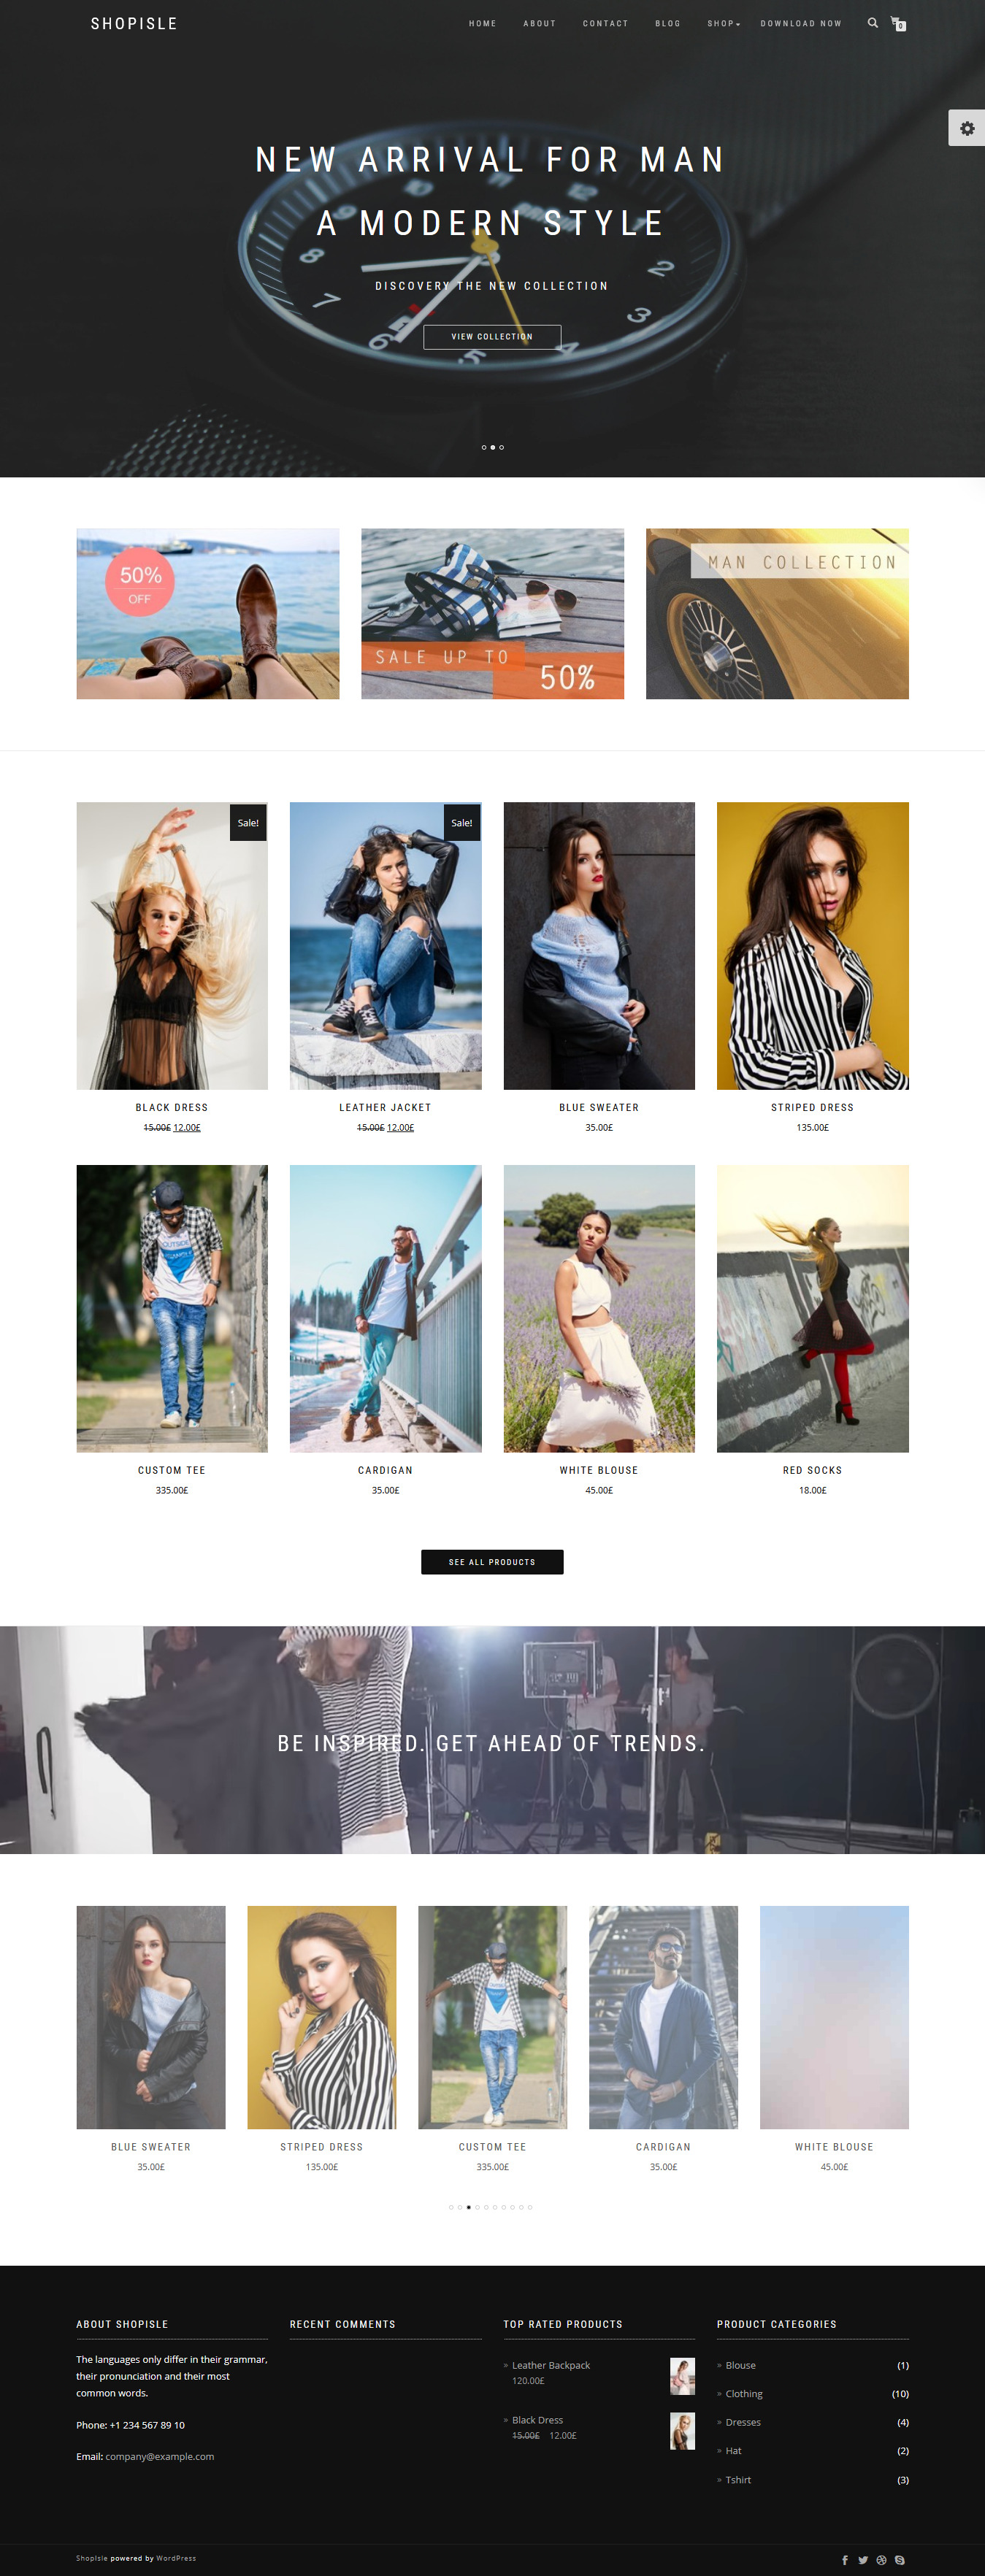 ShopIsle - Best Free Retail Shop WordPress Theme